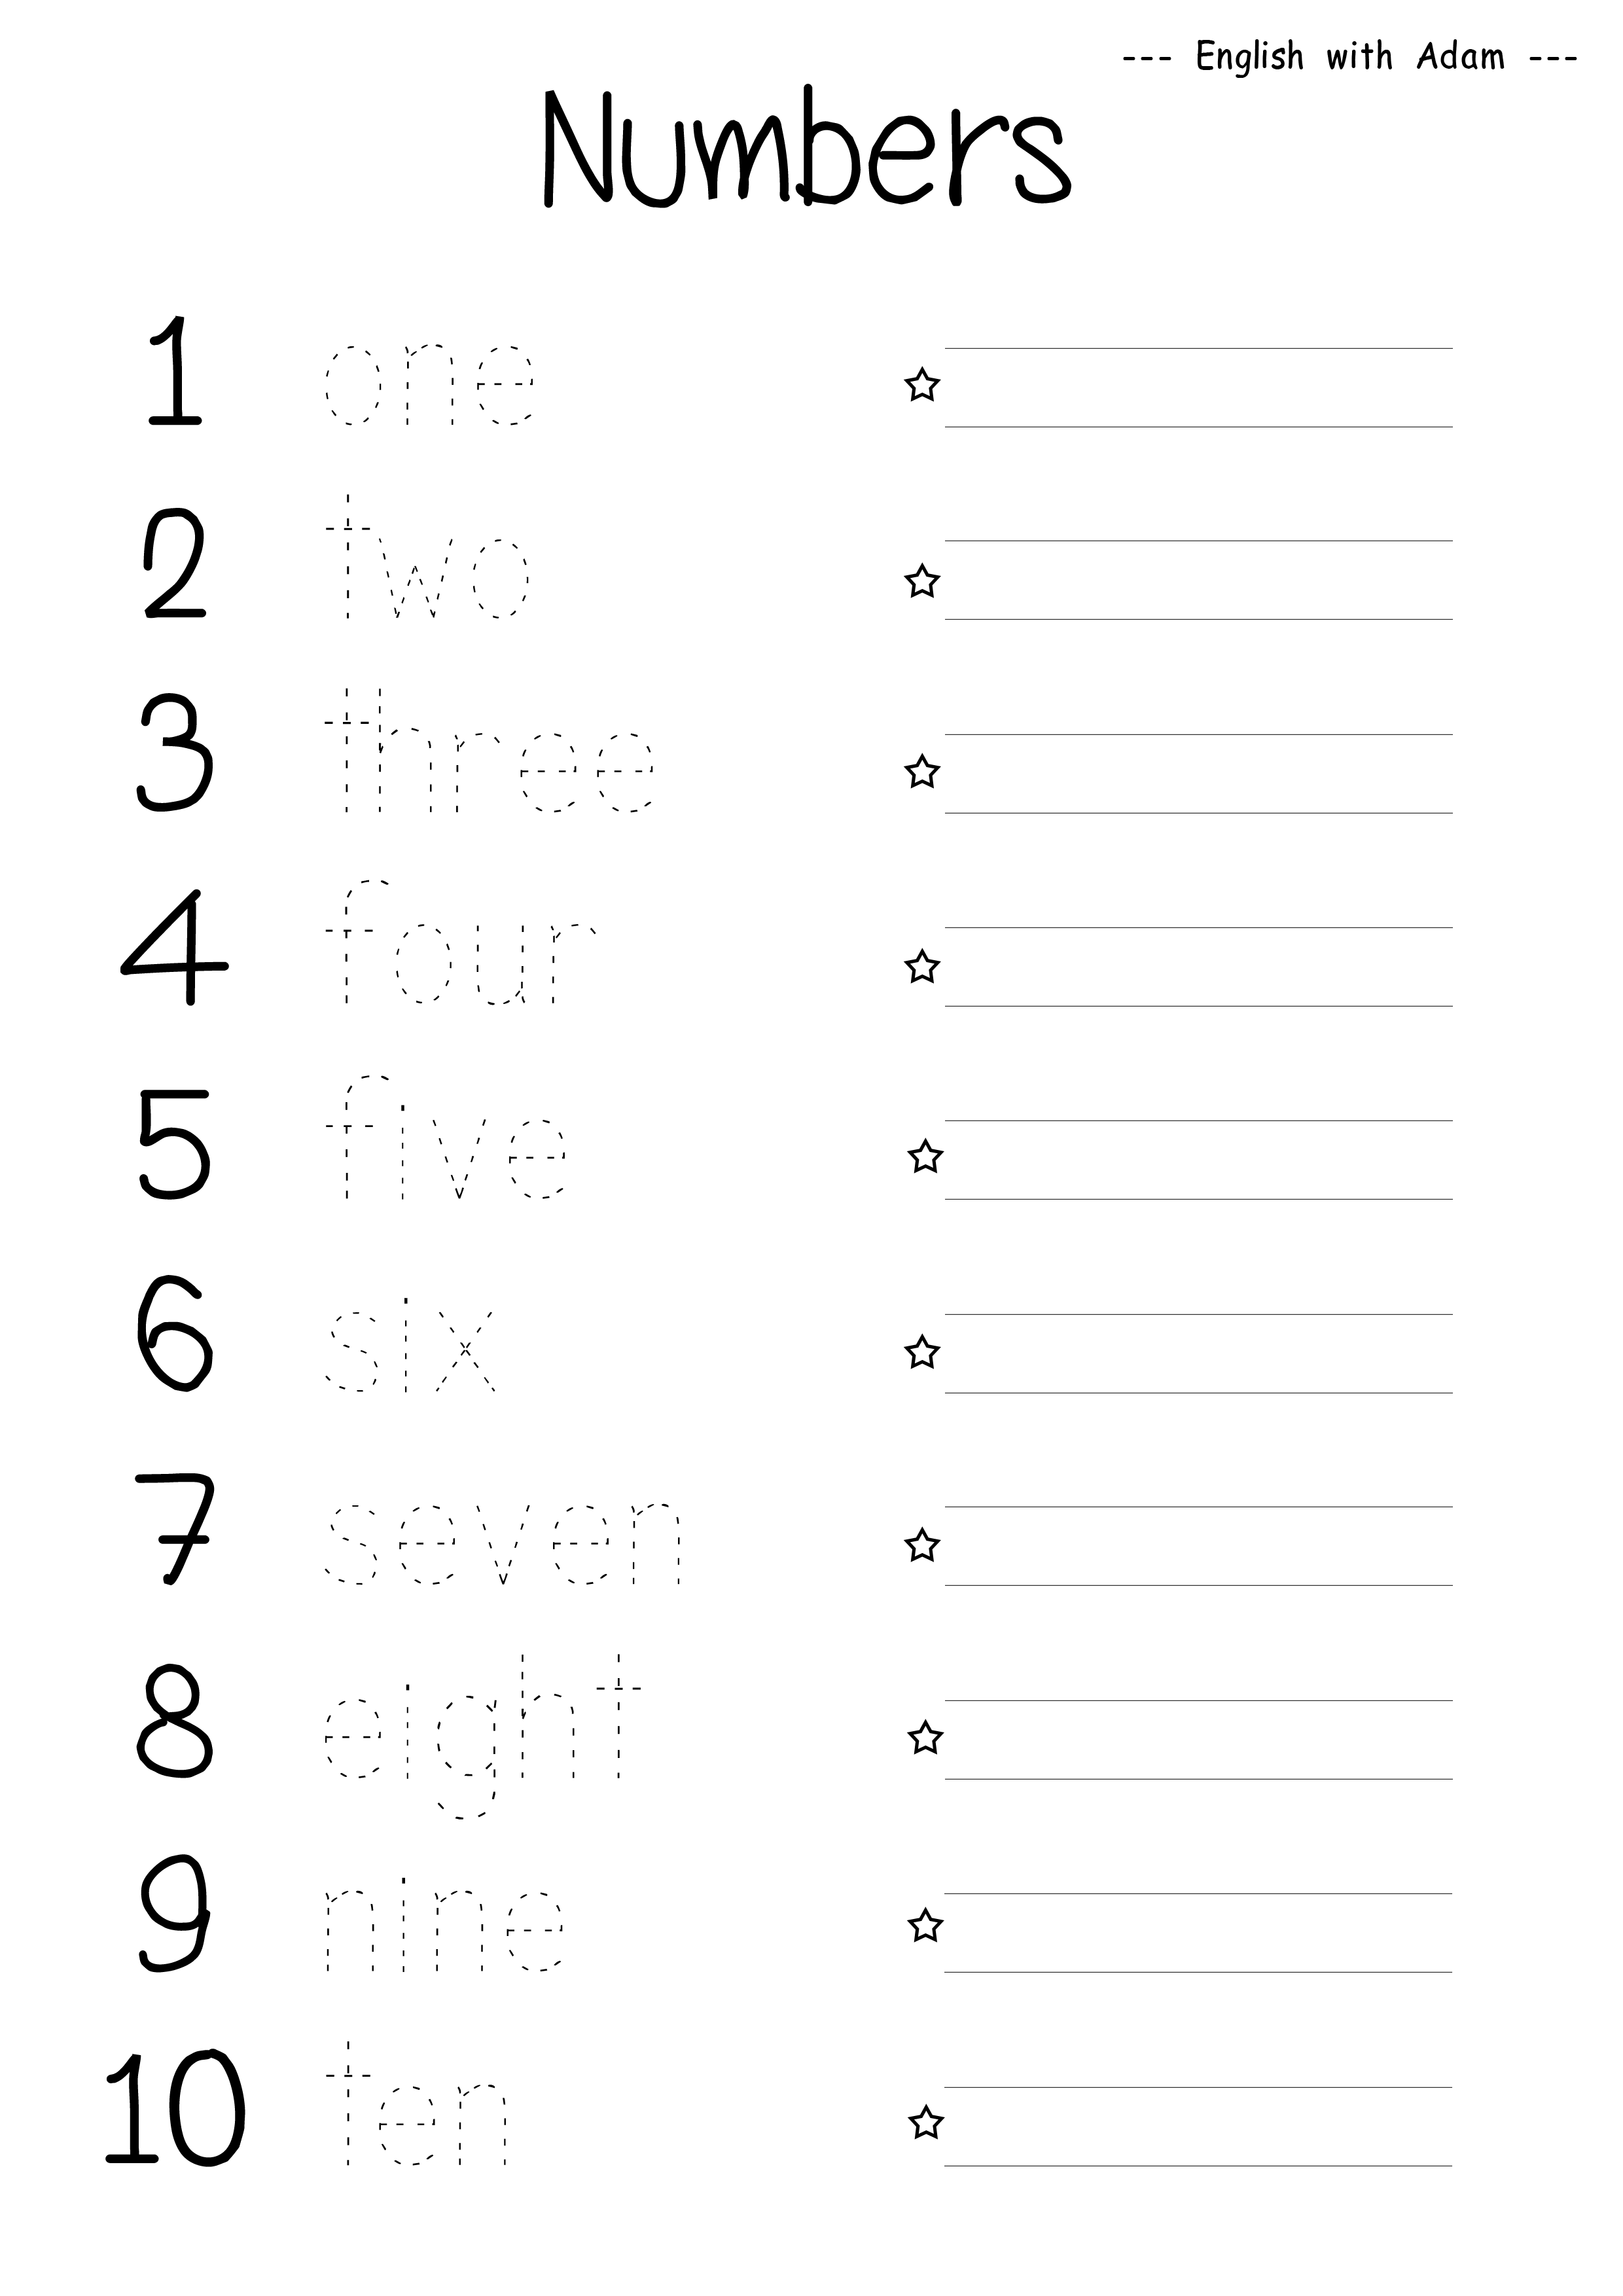 Numbers Educational Kids English Worksheets English